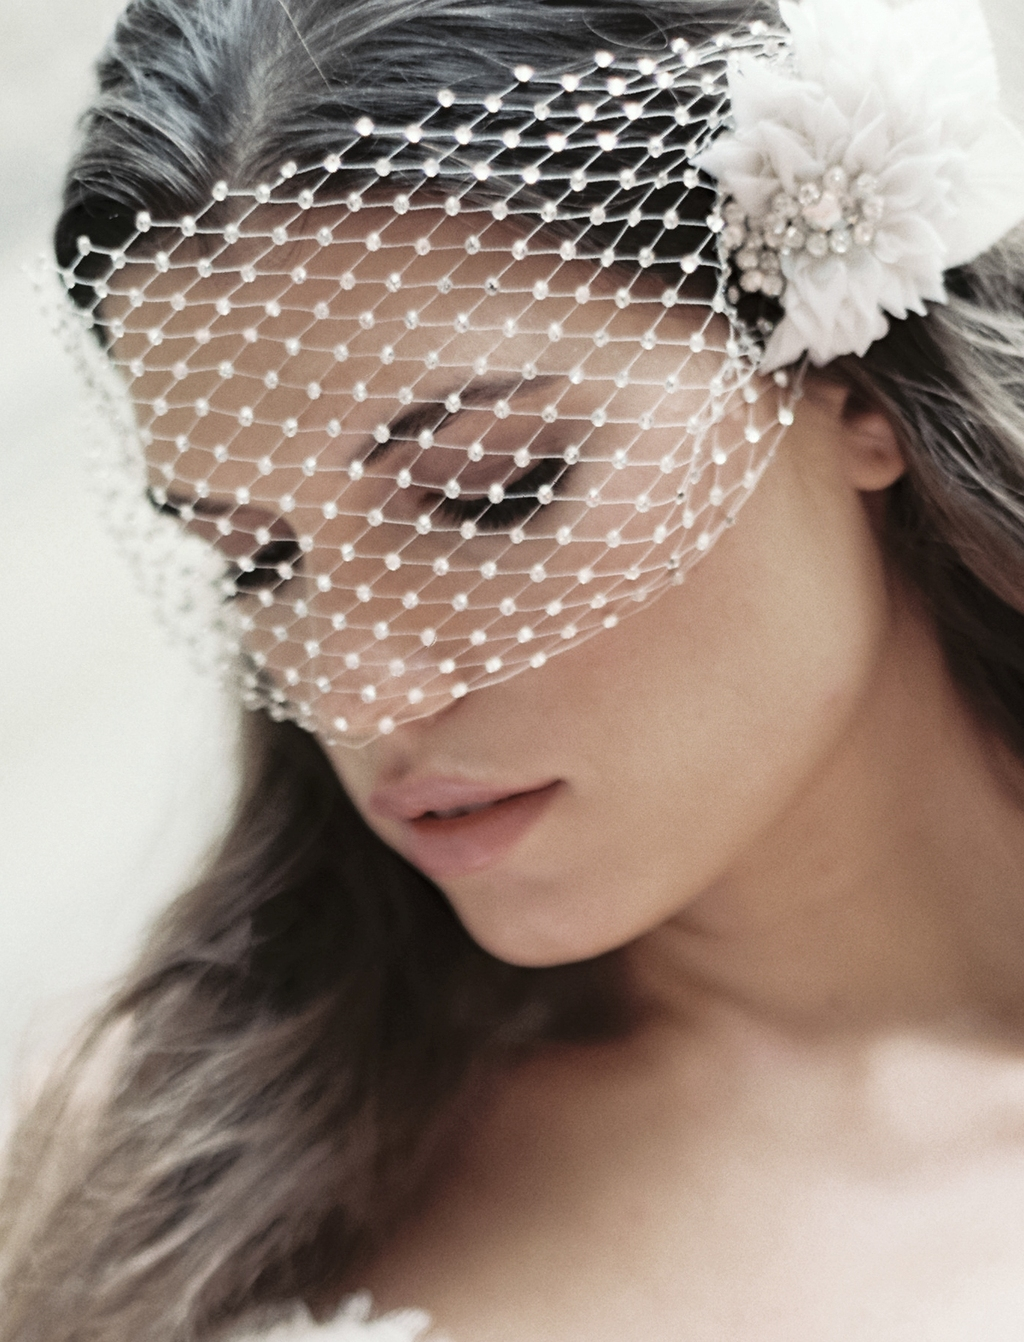 Marie%20luxe%20veil,%20photo%20by%20laura%20gordon.full